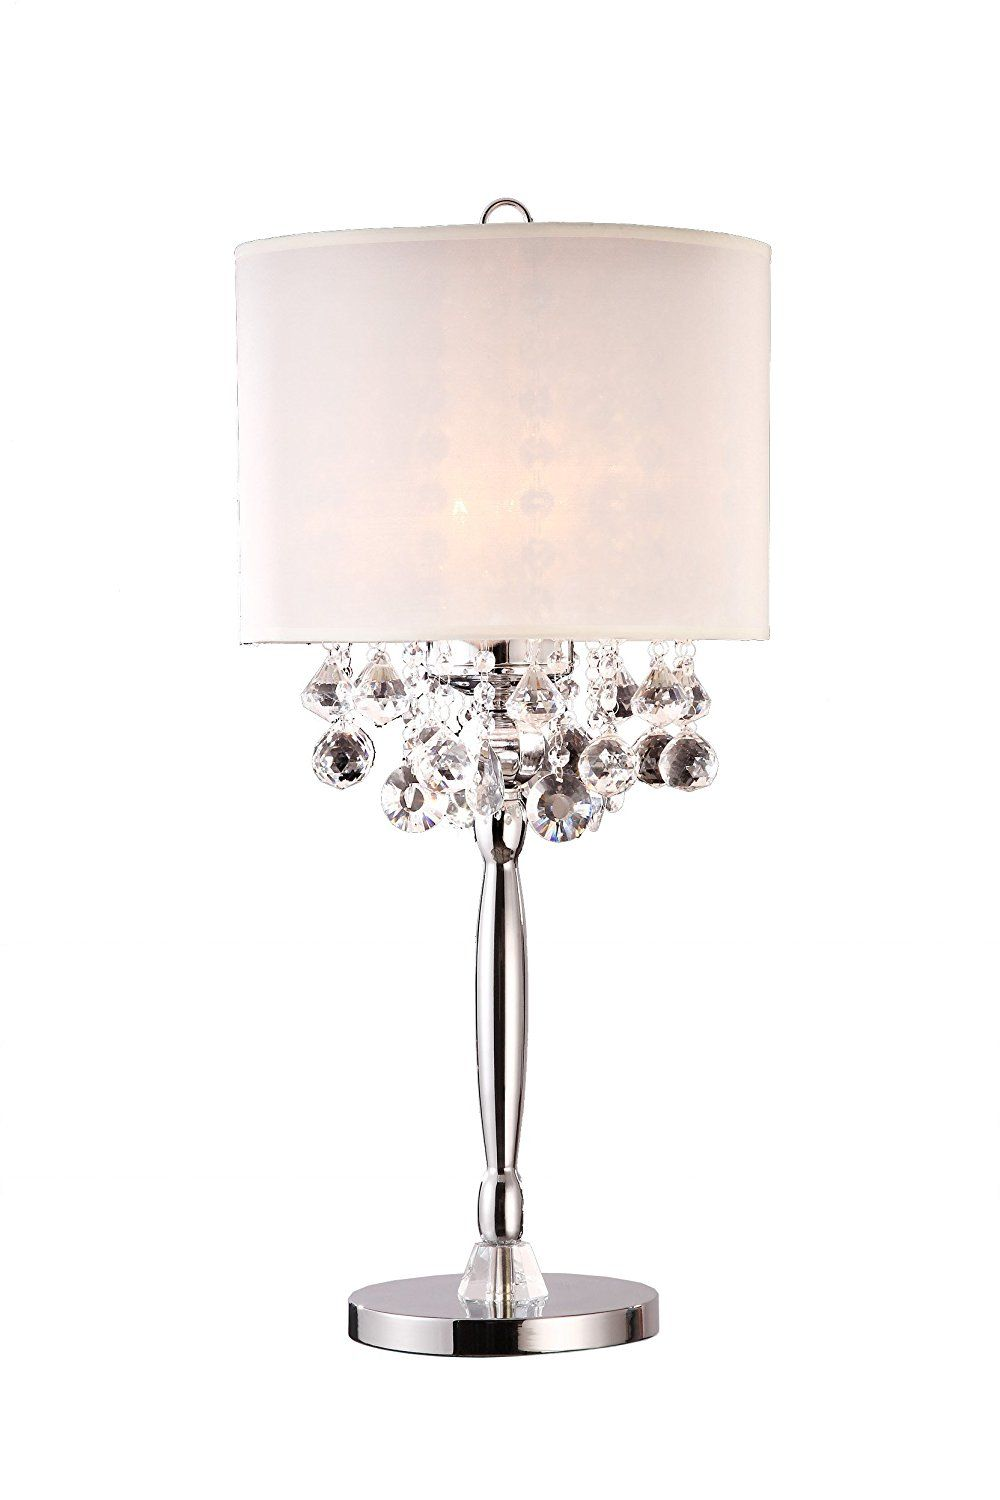 30 H Modern Crystal Chandelier With White Shade Table Lamp Silver Table Lamps Table Lamp Modern Crystal Chandelier